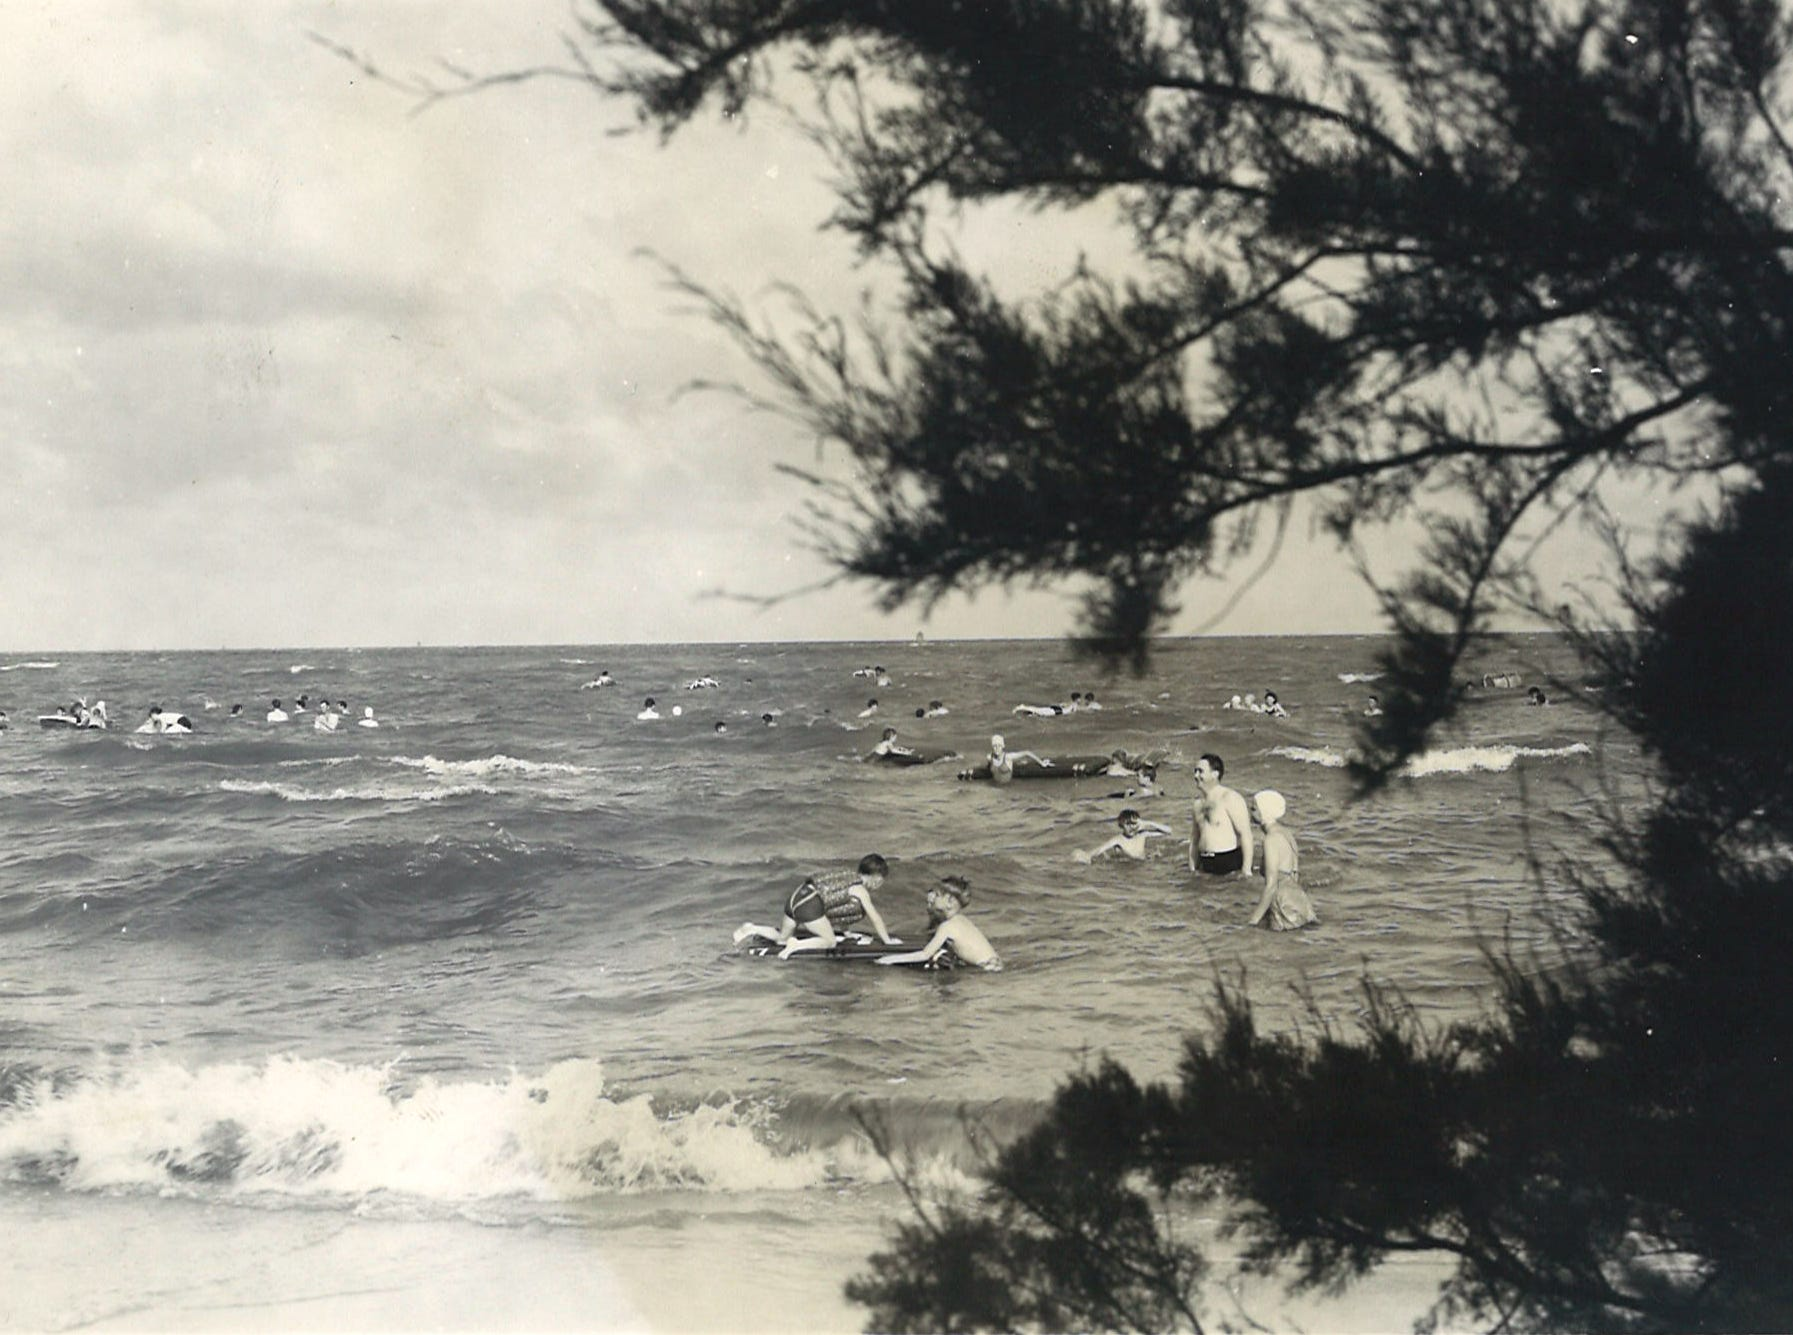 Swimmers on Corpus Christi's North Beach in July 1941. Photo by Doc McGregor.